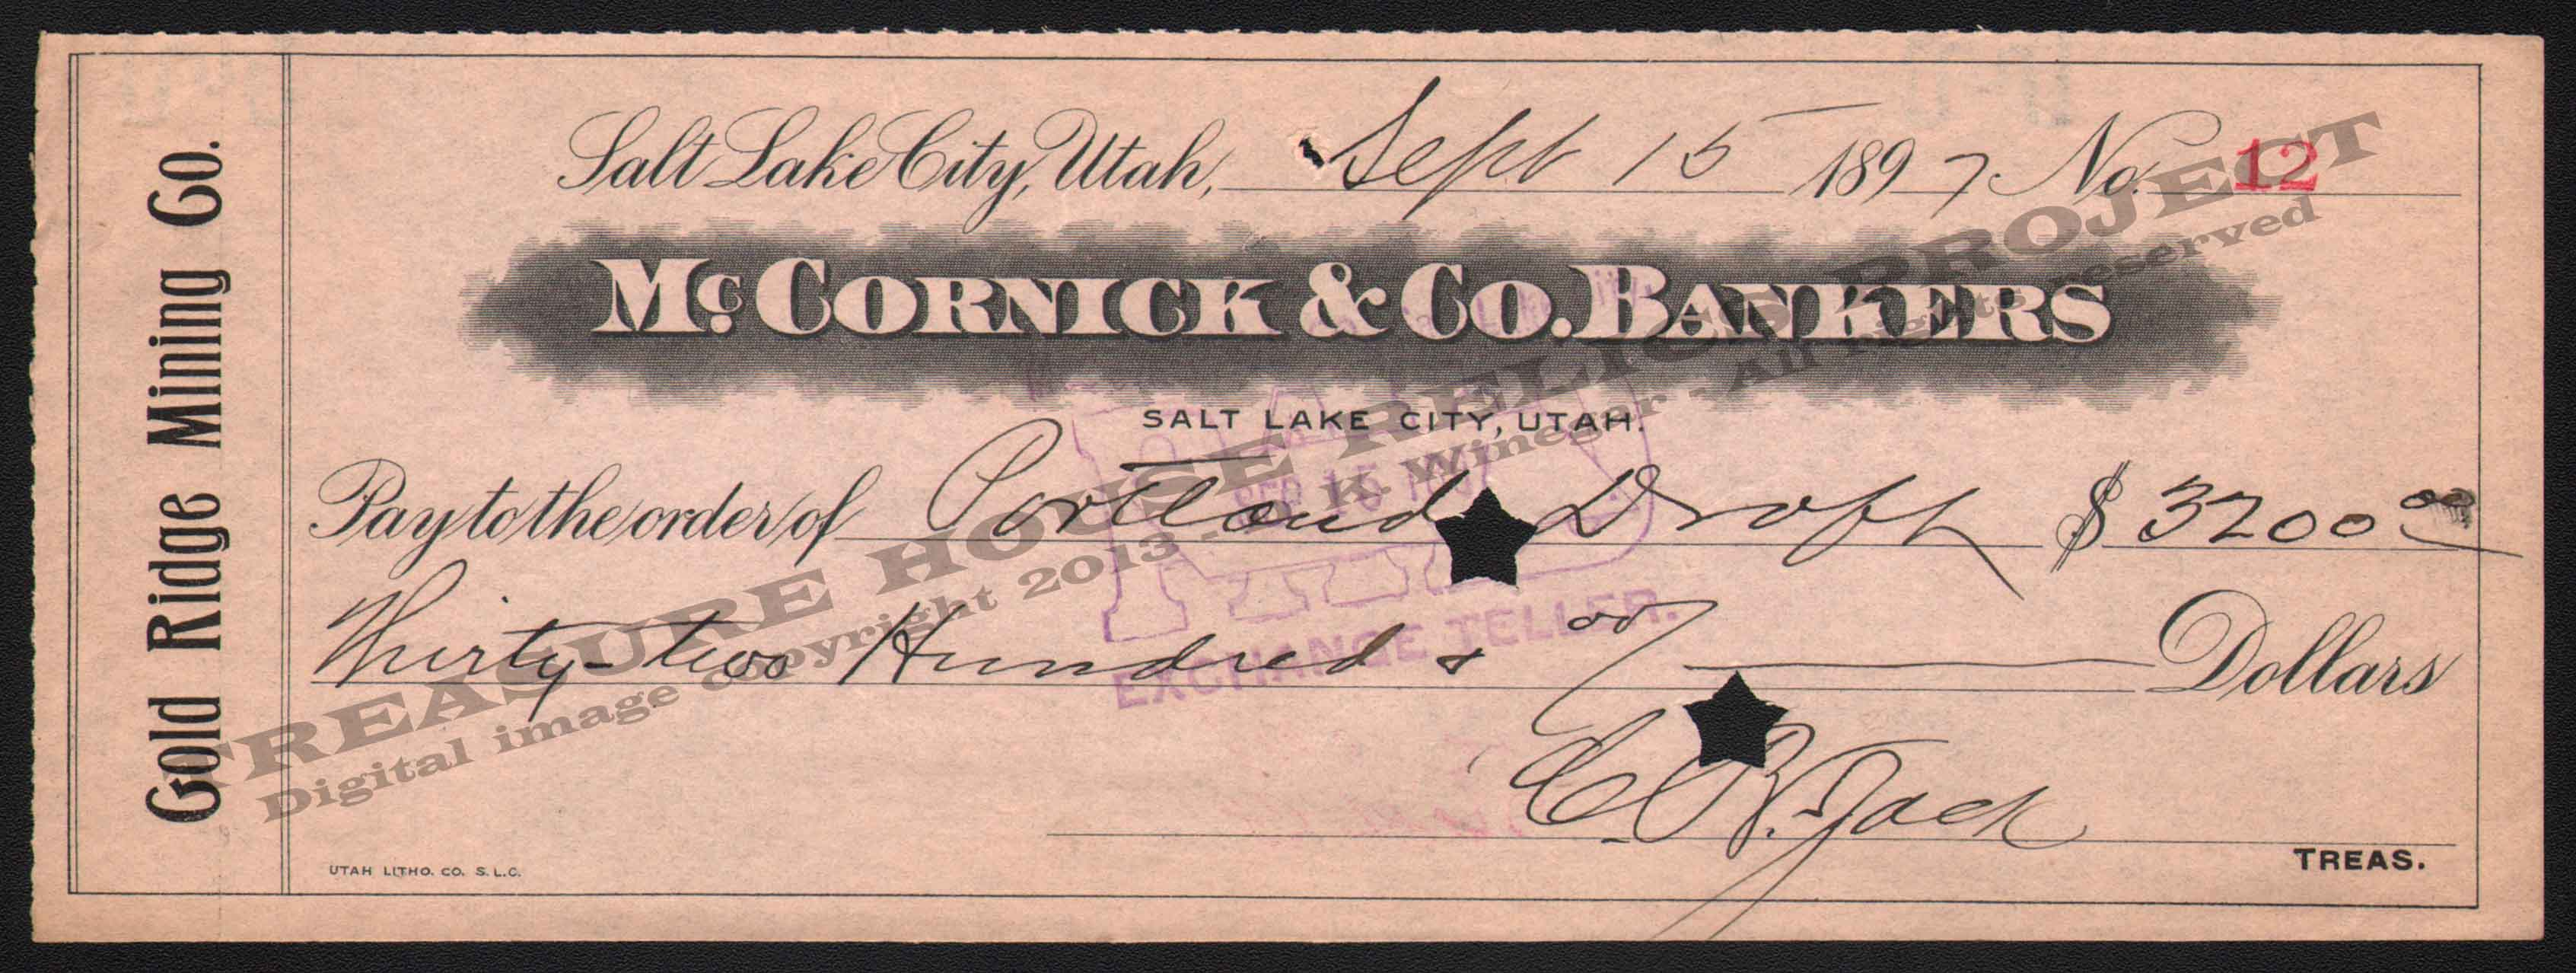 LETTERHEAD/CHECK_ONTARIO_SILVER_MINING_COMPANY_PARK_CITY_UTAH_193_1907_1_22_DSW_323_400_CROP_EMBOSS.jpg